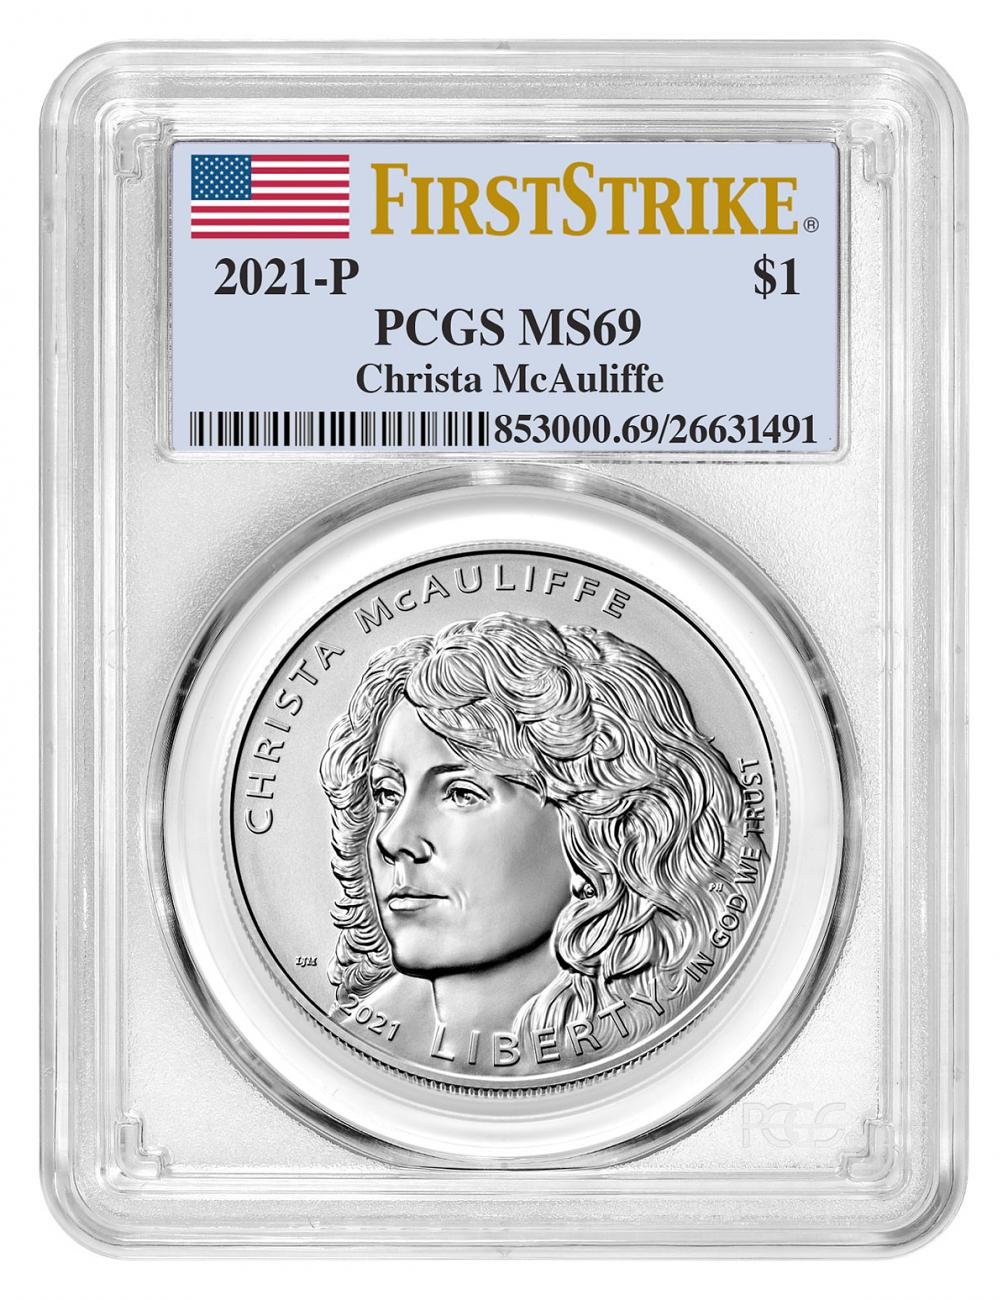 2021-P Christa McAuliffe Commemorative Uncirculated Silver Dollar Coin PCGS MS69 FS Flag Label